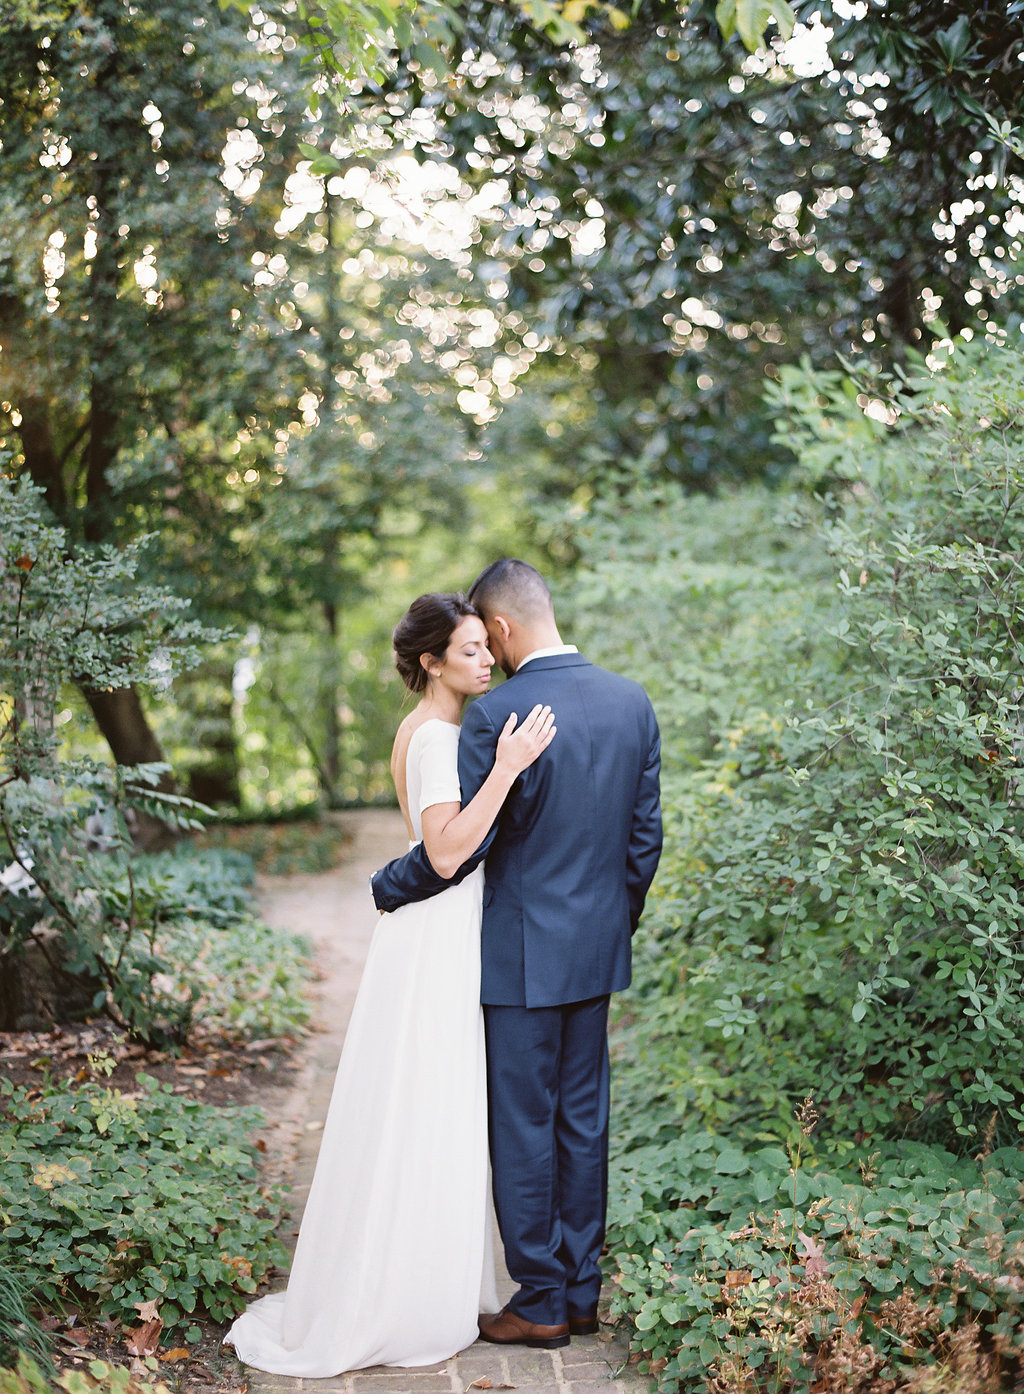 French Inspired Fall Wedding with Fine Art Destination Wedding Planner East Made Event Company and DC Film Photographer Vicki Grafton Photography at Tudor Place in Washington DC-120.jpg